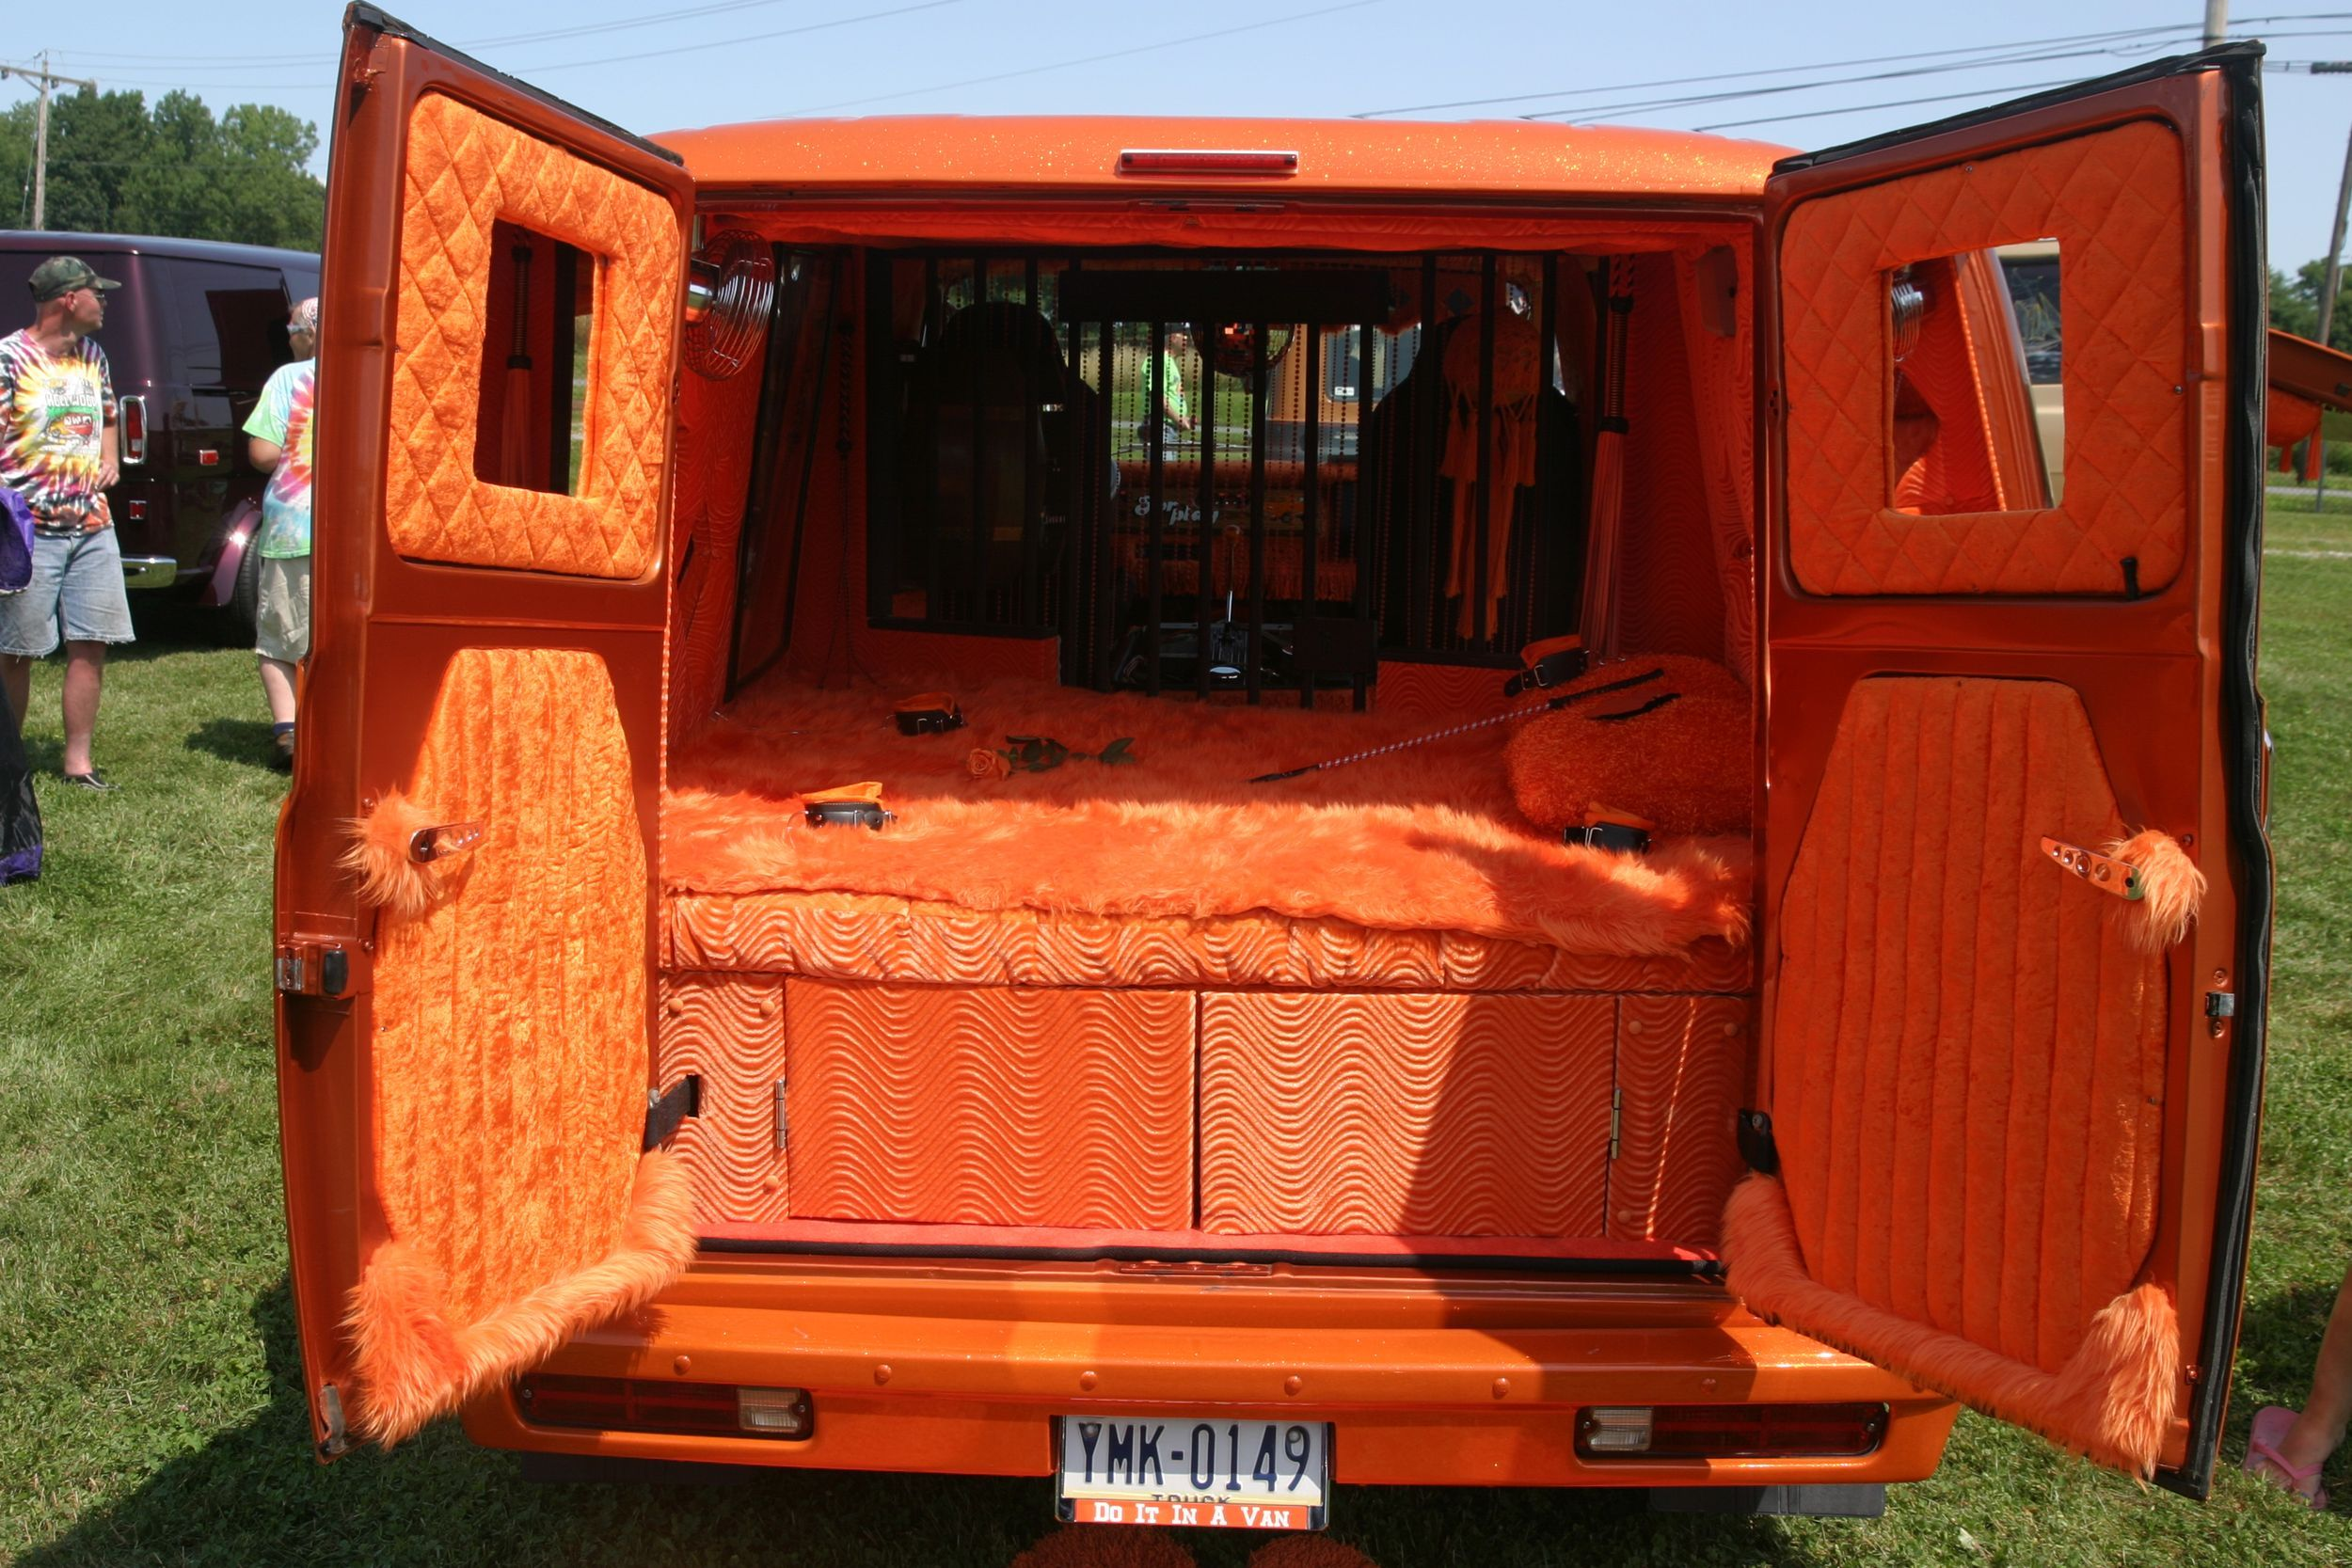 70s Conversion Van Interior